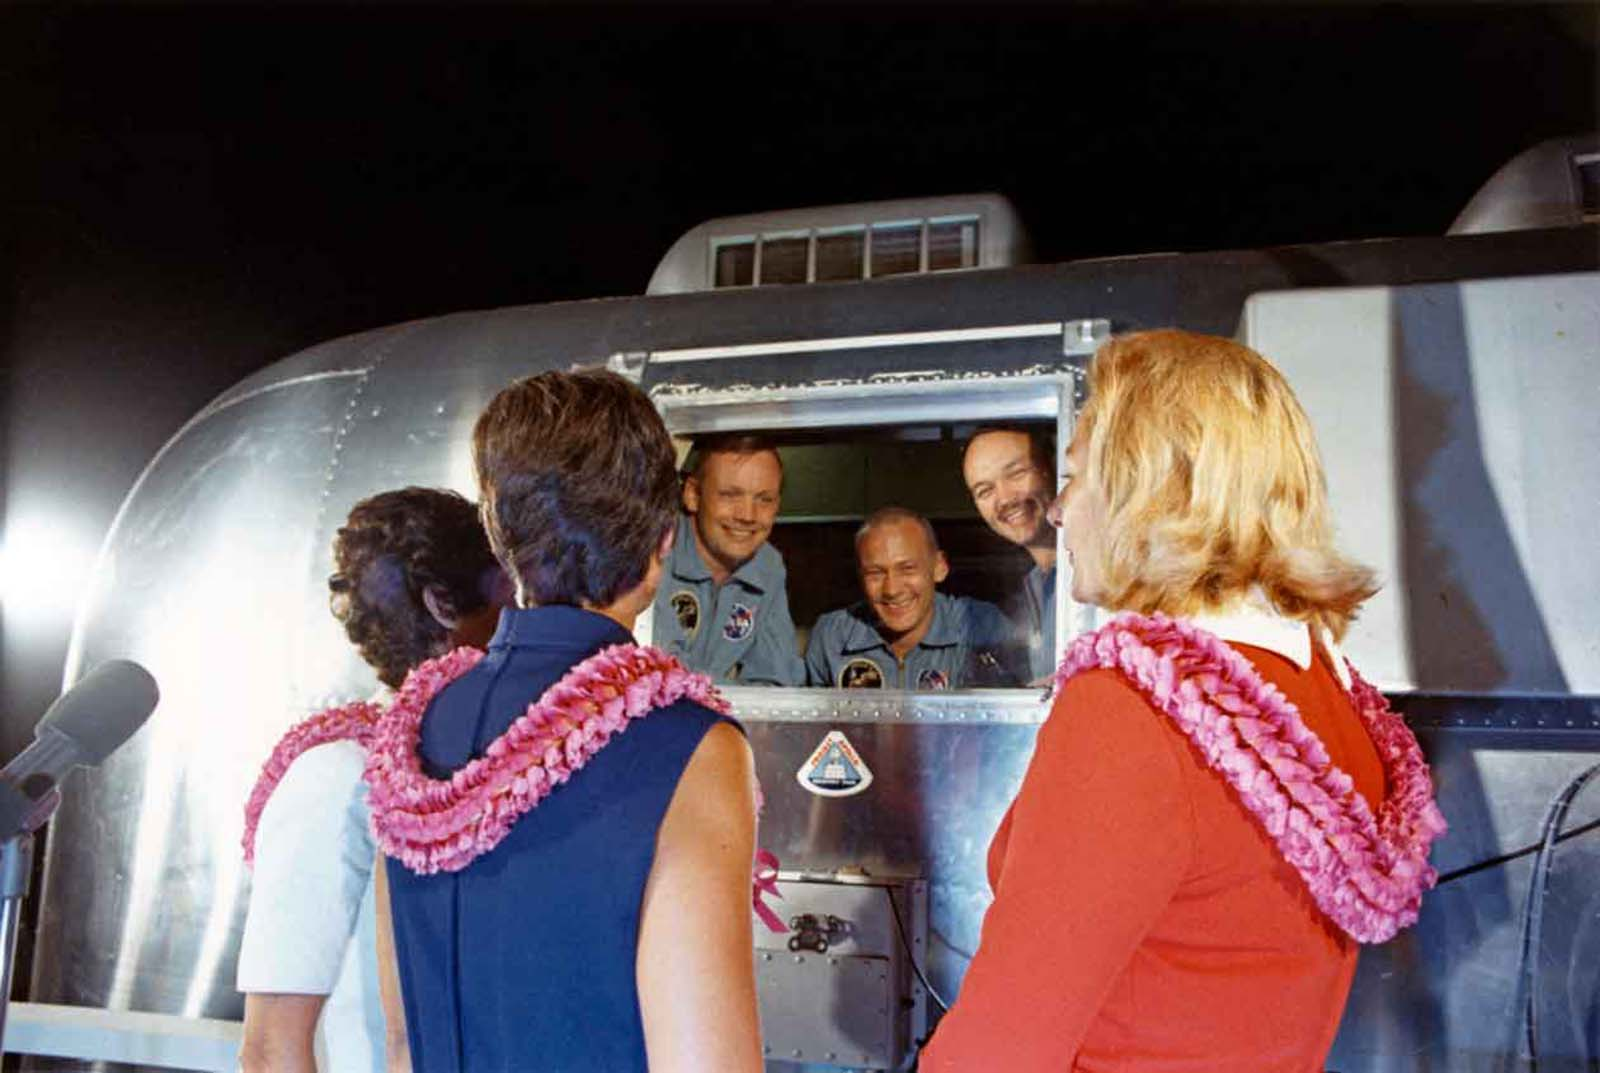 The three crew members of NASA's Apollo 11 lunar landing mission are greeted by their wives after their arrival at Ellington Air Force Base near Houston in Texas in a Mobile Quarantine Facility (MQF) earlier that day, 27th July 1969. From left to right, astronauts Neil A Armstrong, Edwin E 'Buzz' Aldrin Jr and Michael Collins and their wives (left to right) Pat Collins, Jan Armstrong and Joan Aldrin. The crew remained in the MQF until they arrived at the Crew Reception Area of the Lunar Receiving Laboratory (LRL) at the Manned Spacecraft Center (MSC). They will be released from quarantine on 11th August